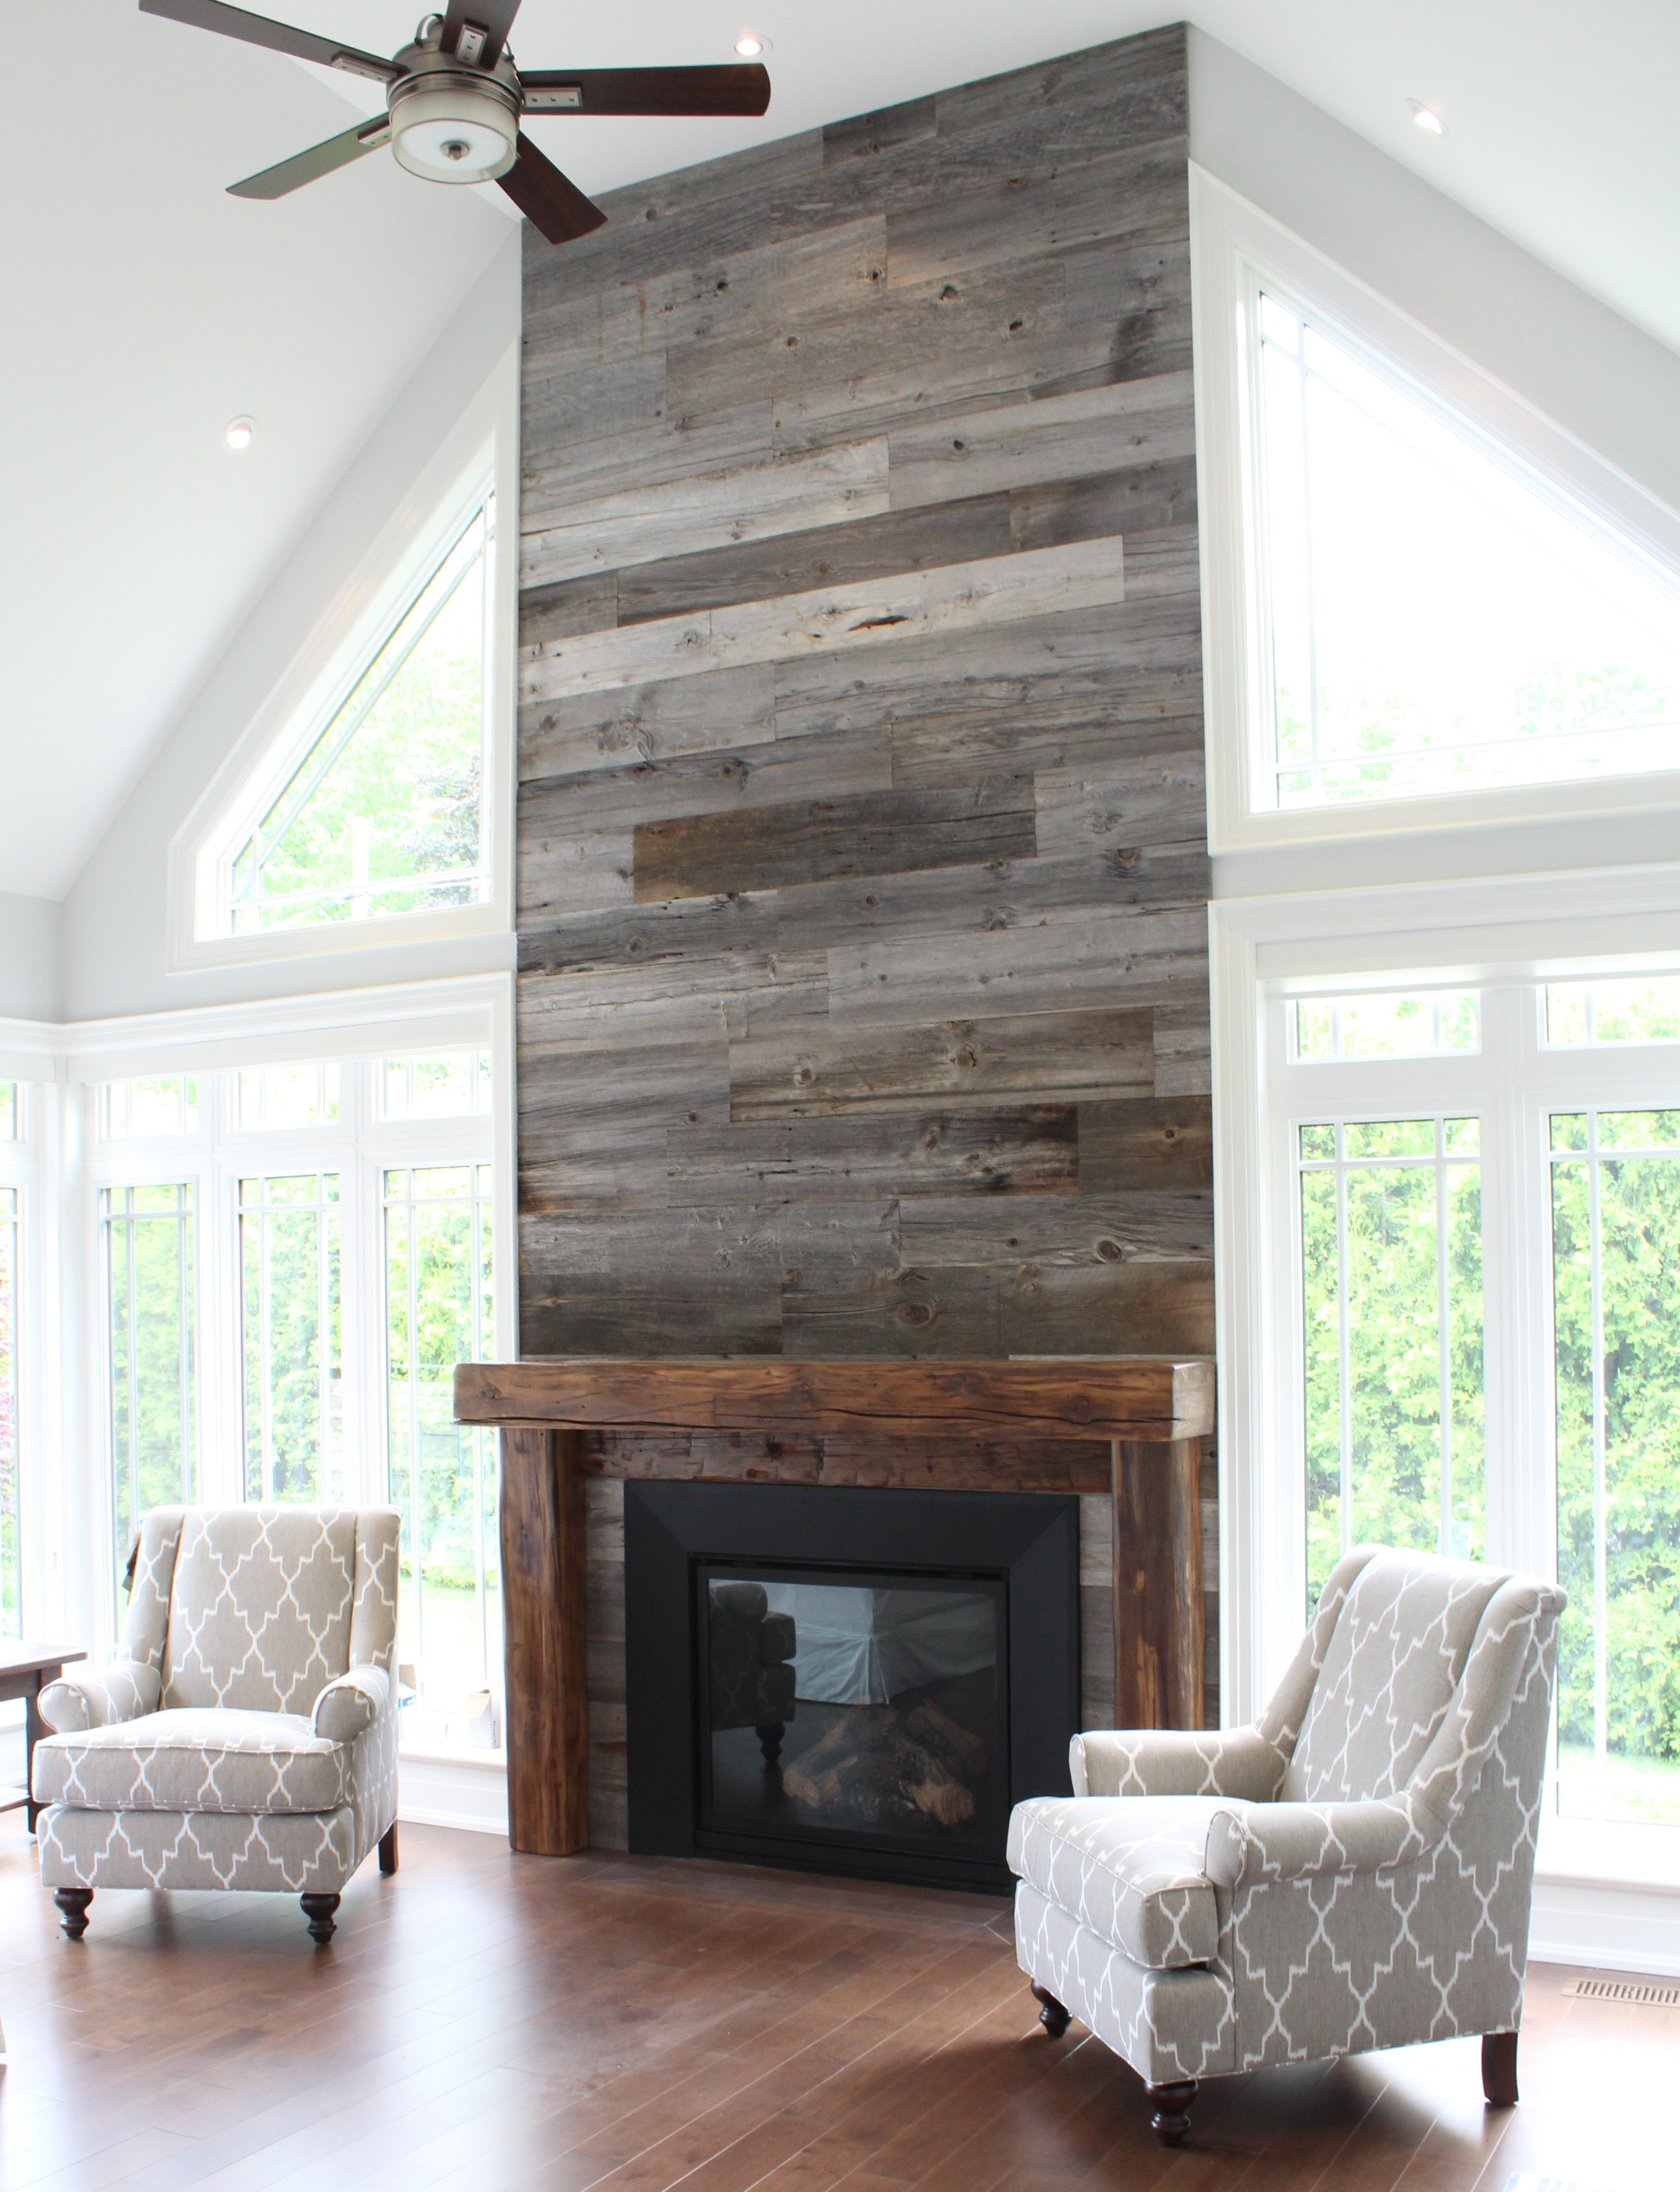 Faux Wood Beam Fireplace Mantels Uk 94 Reclaimed Wood Beam Fireplace Mantel Barn Beam Mantel With